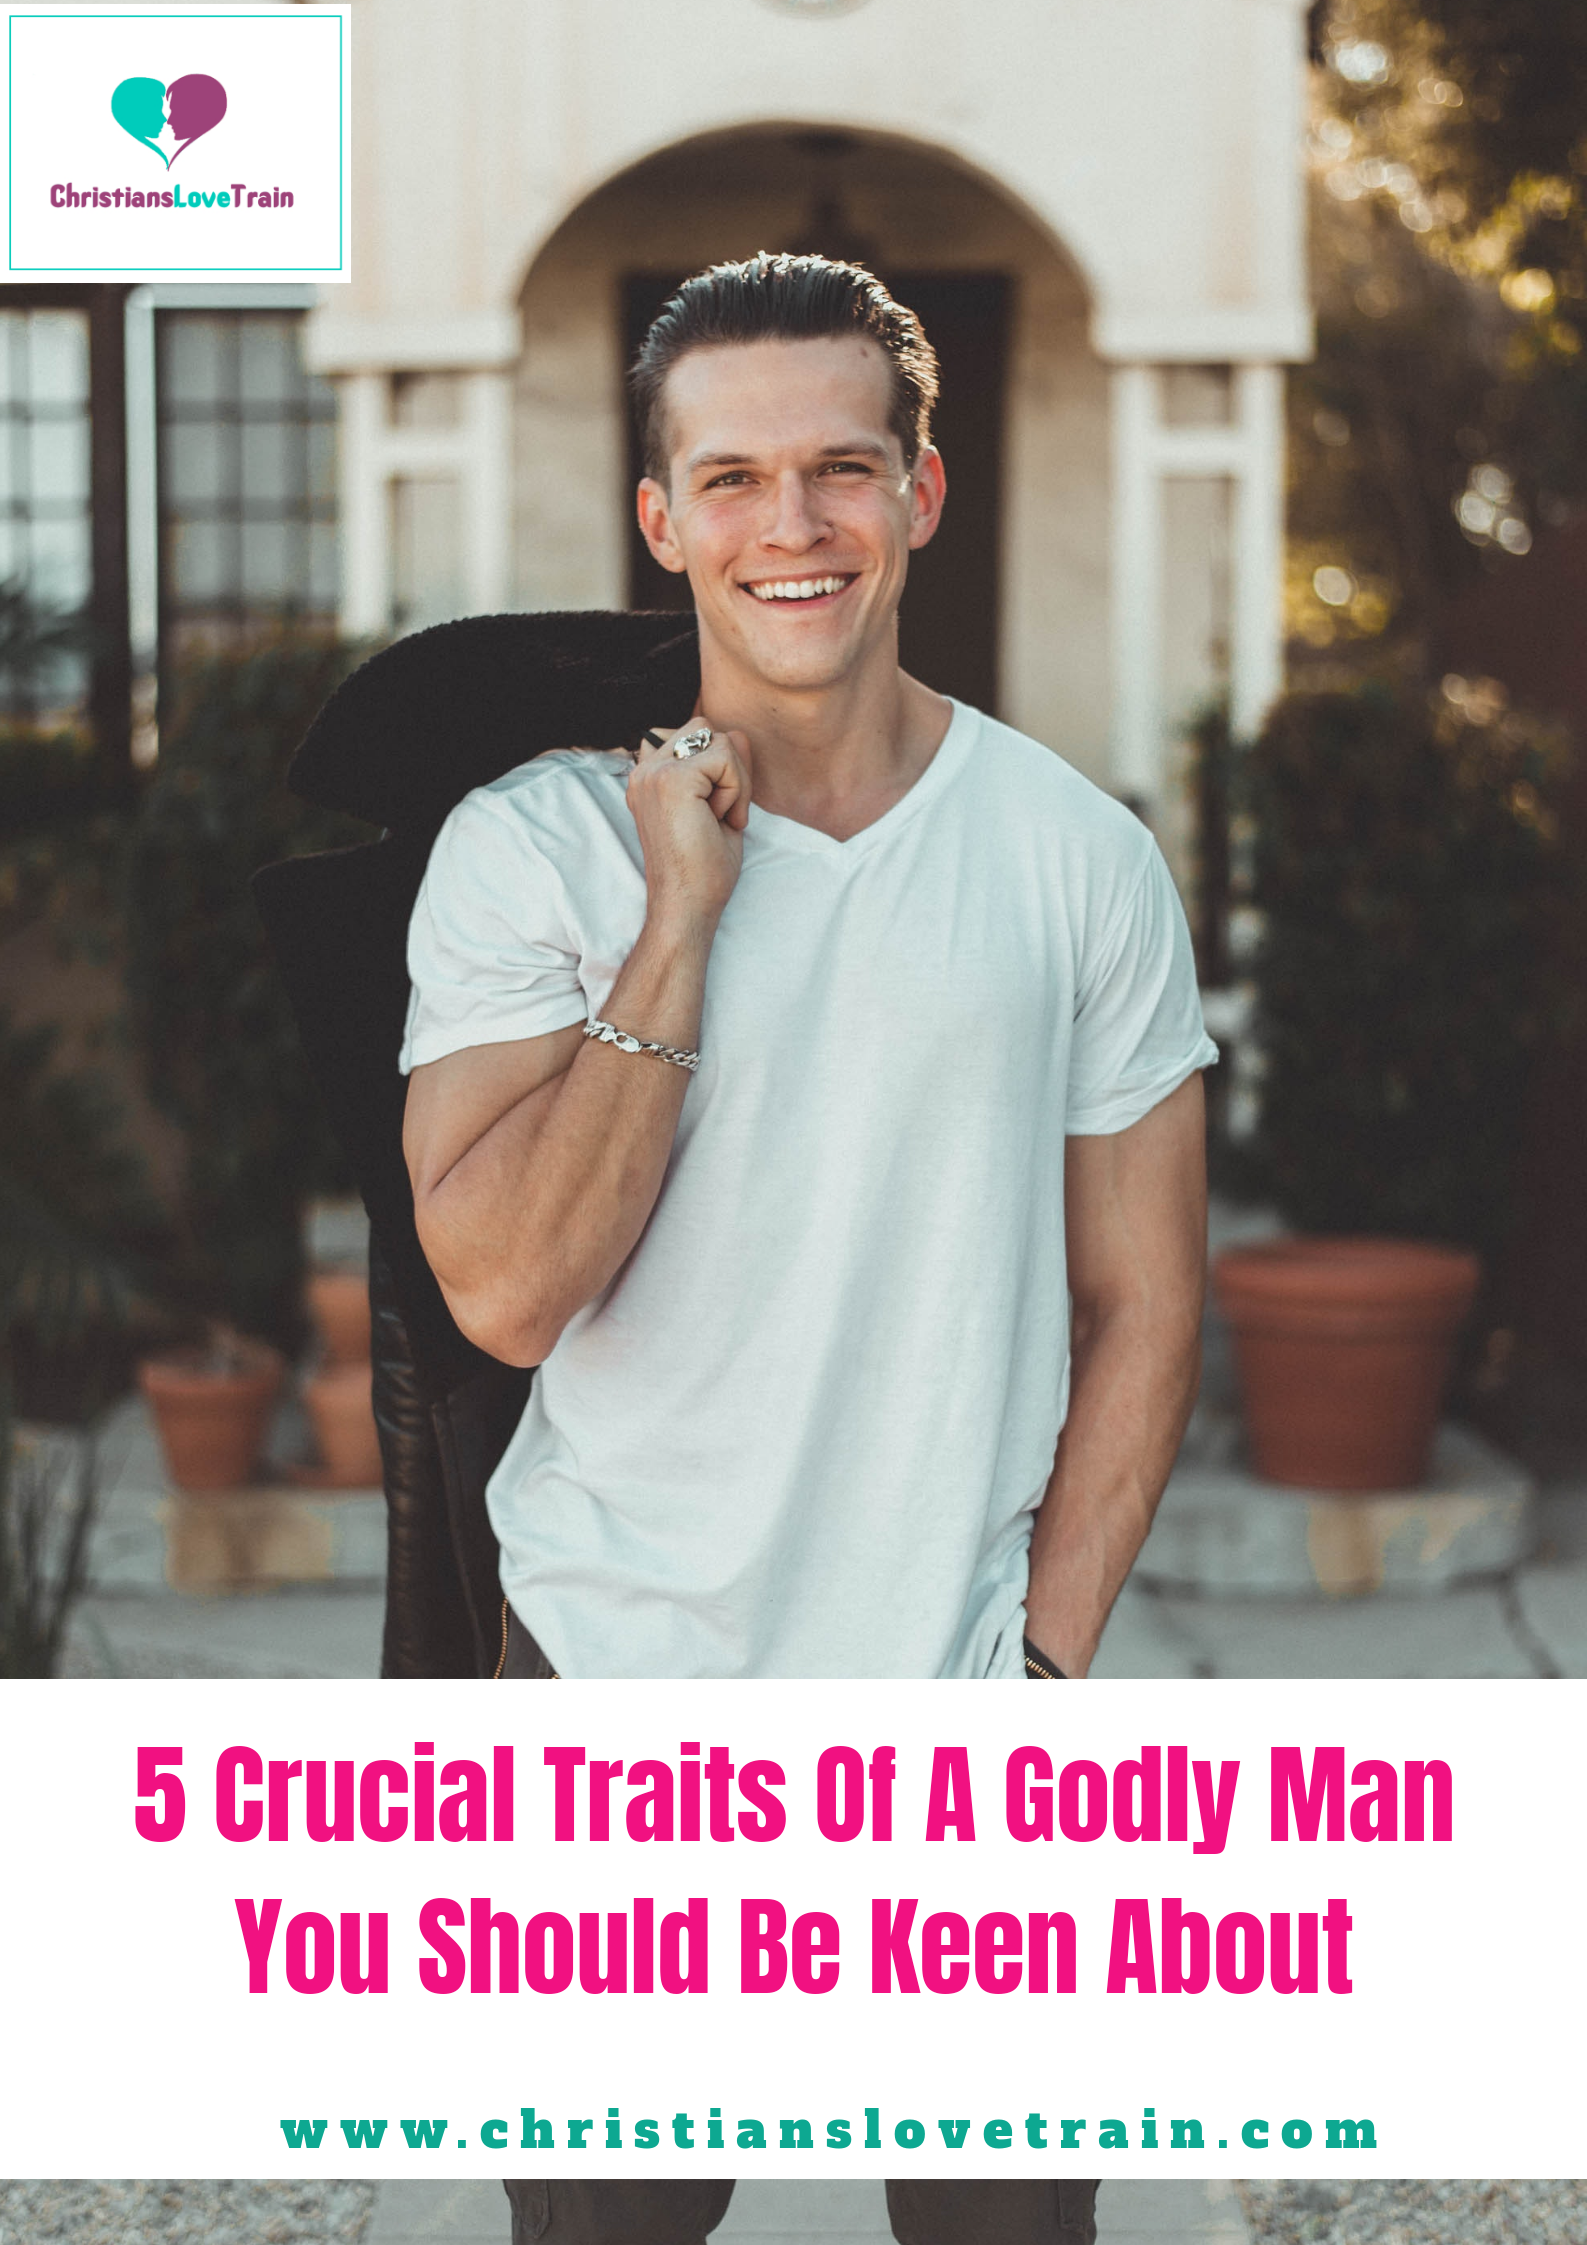 5 Crucial Traits Of A Godly Man You Should Be Keen About